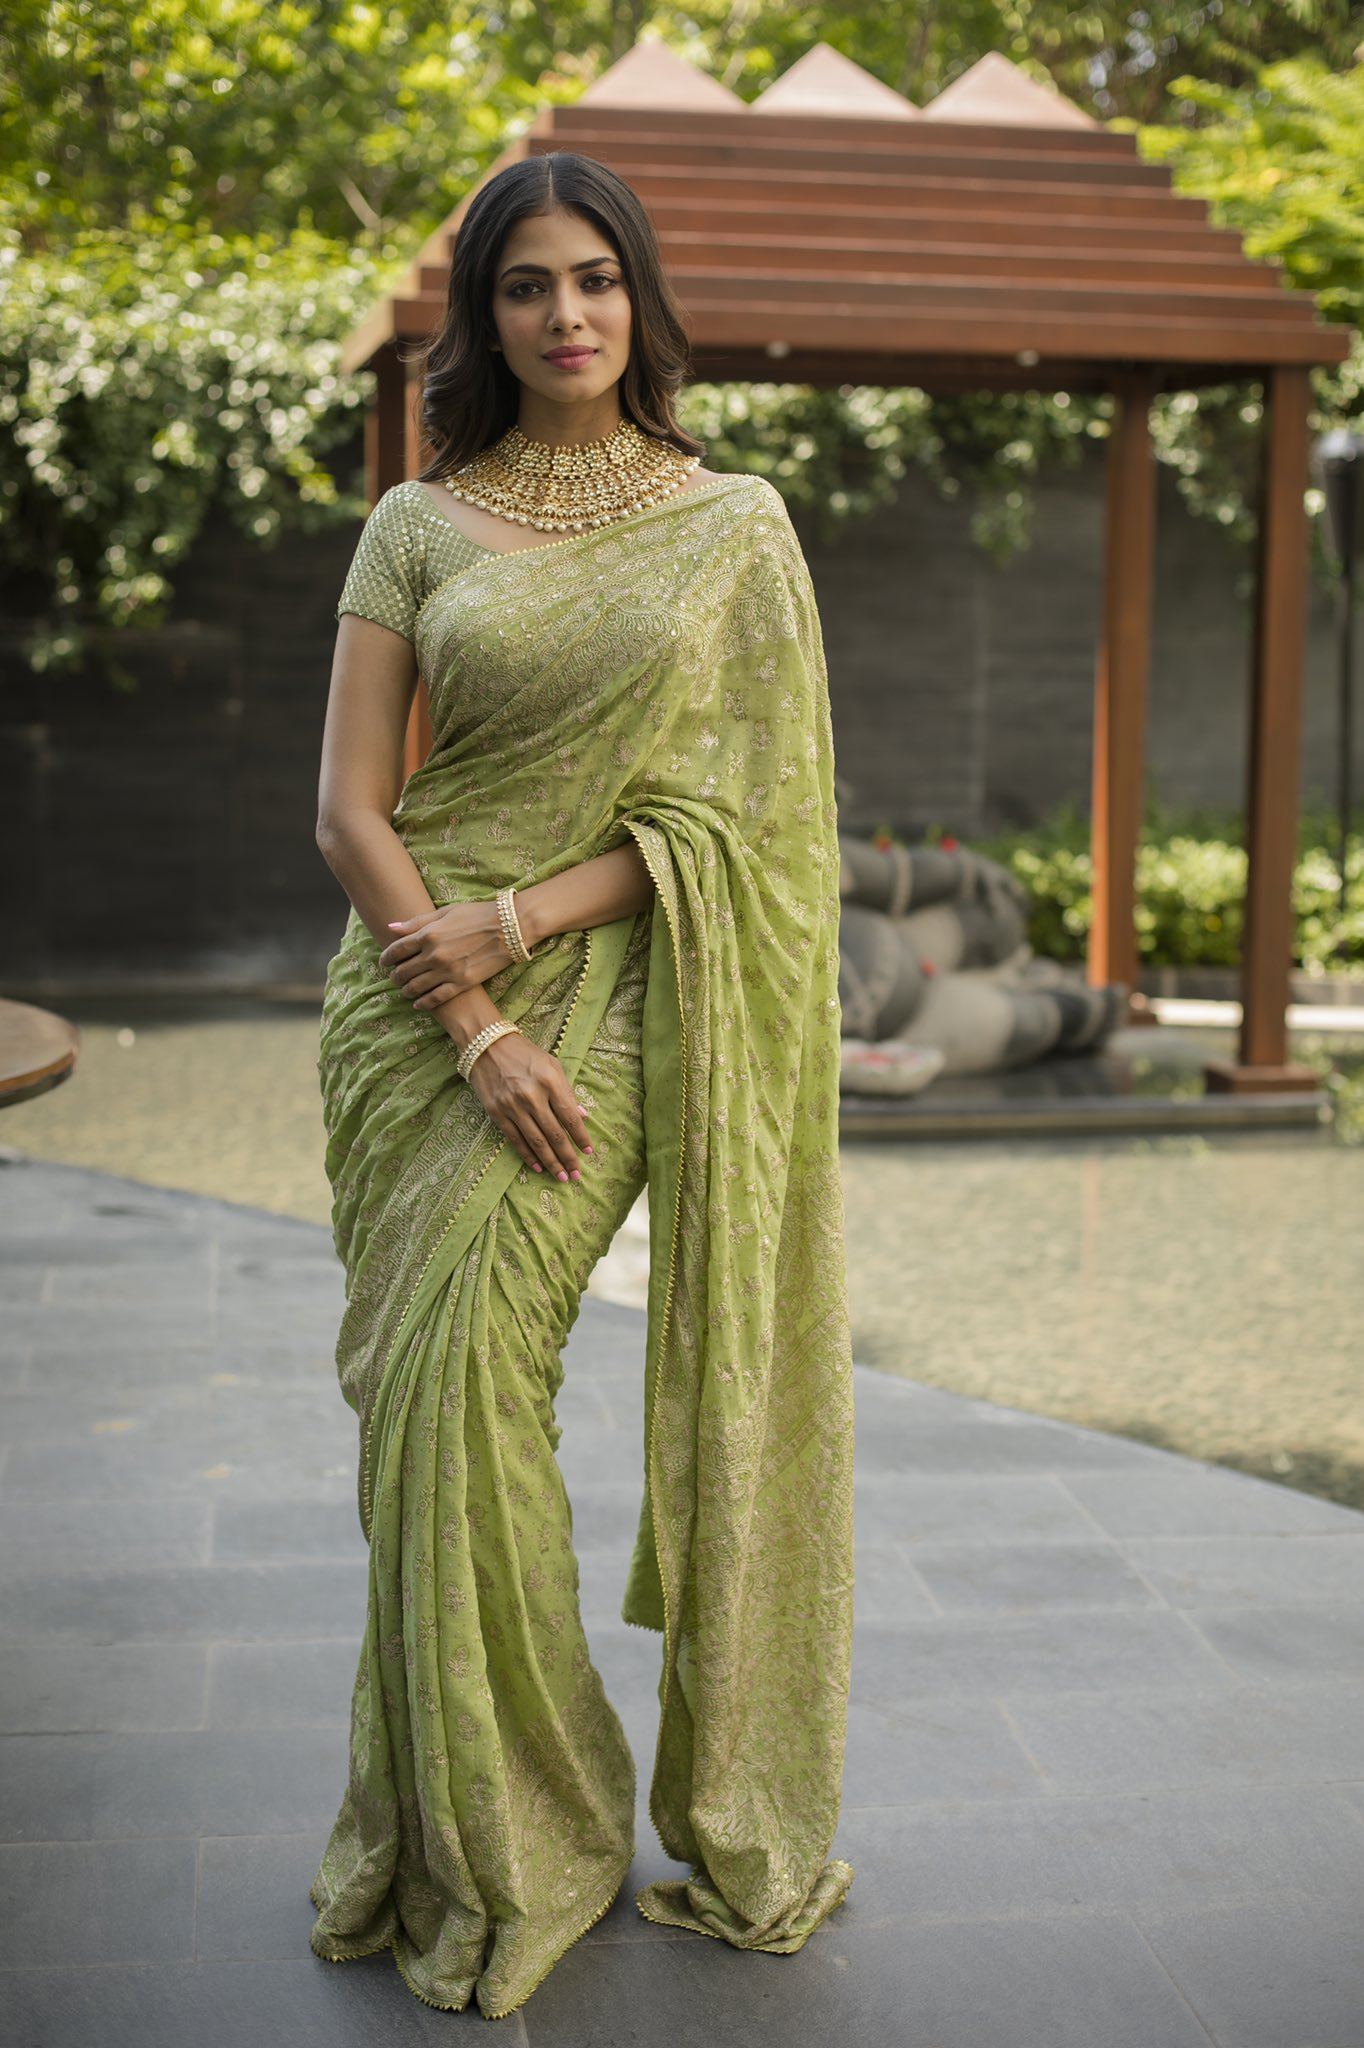 Malavika-Mohanan-in-Green-Saree